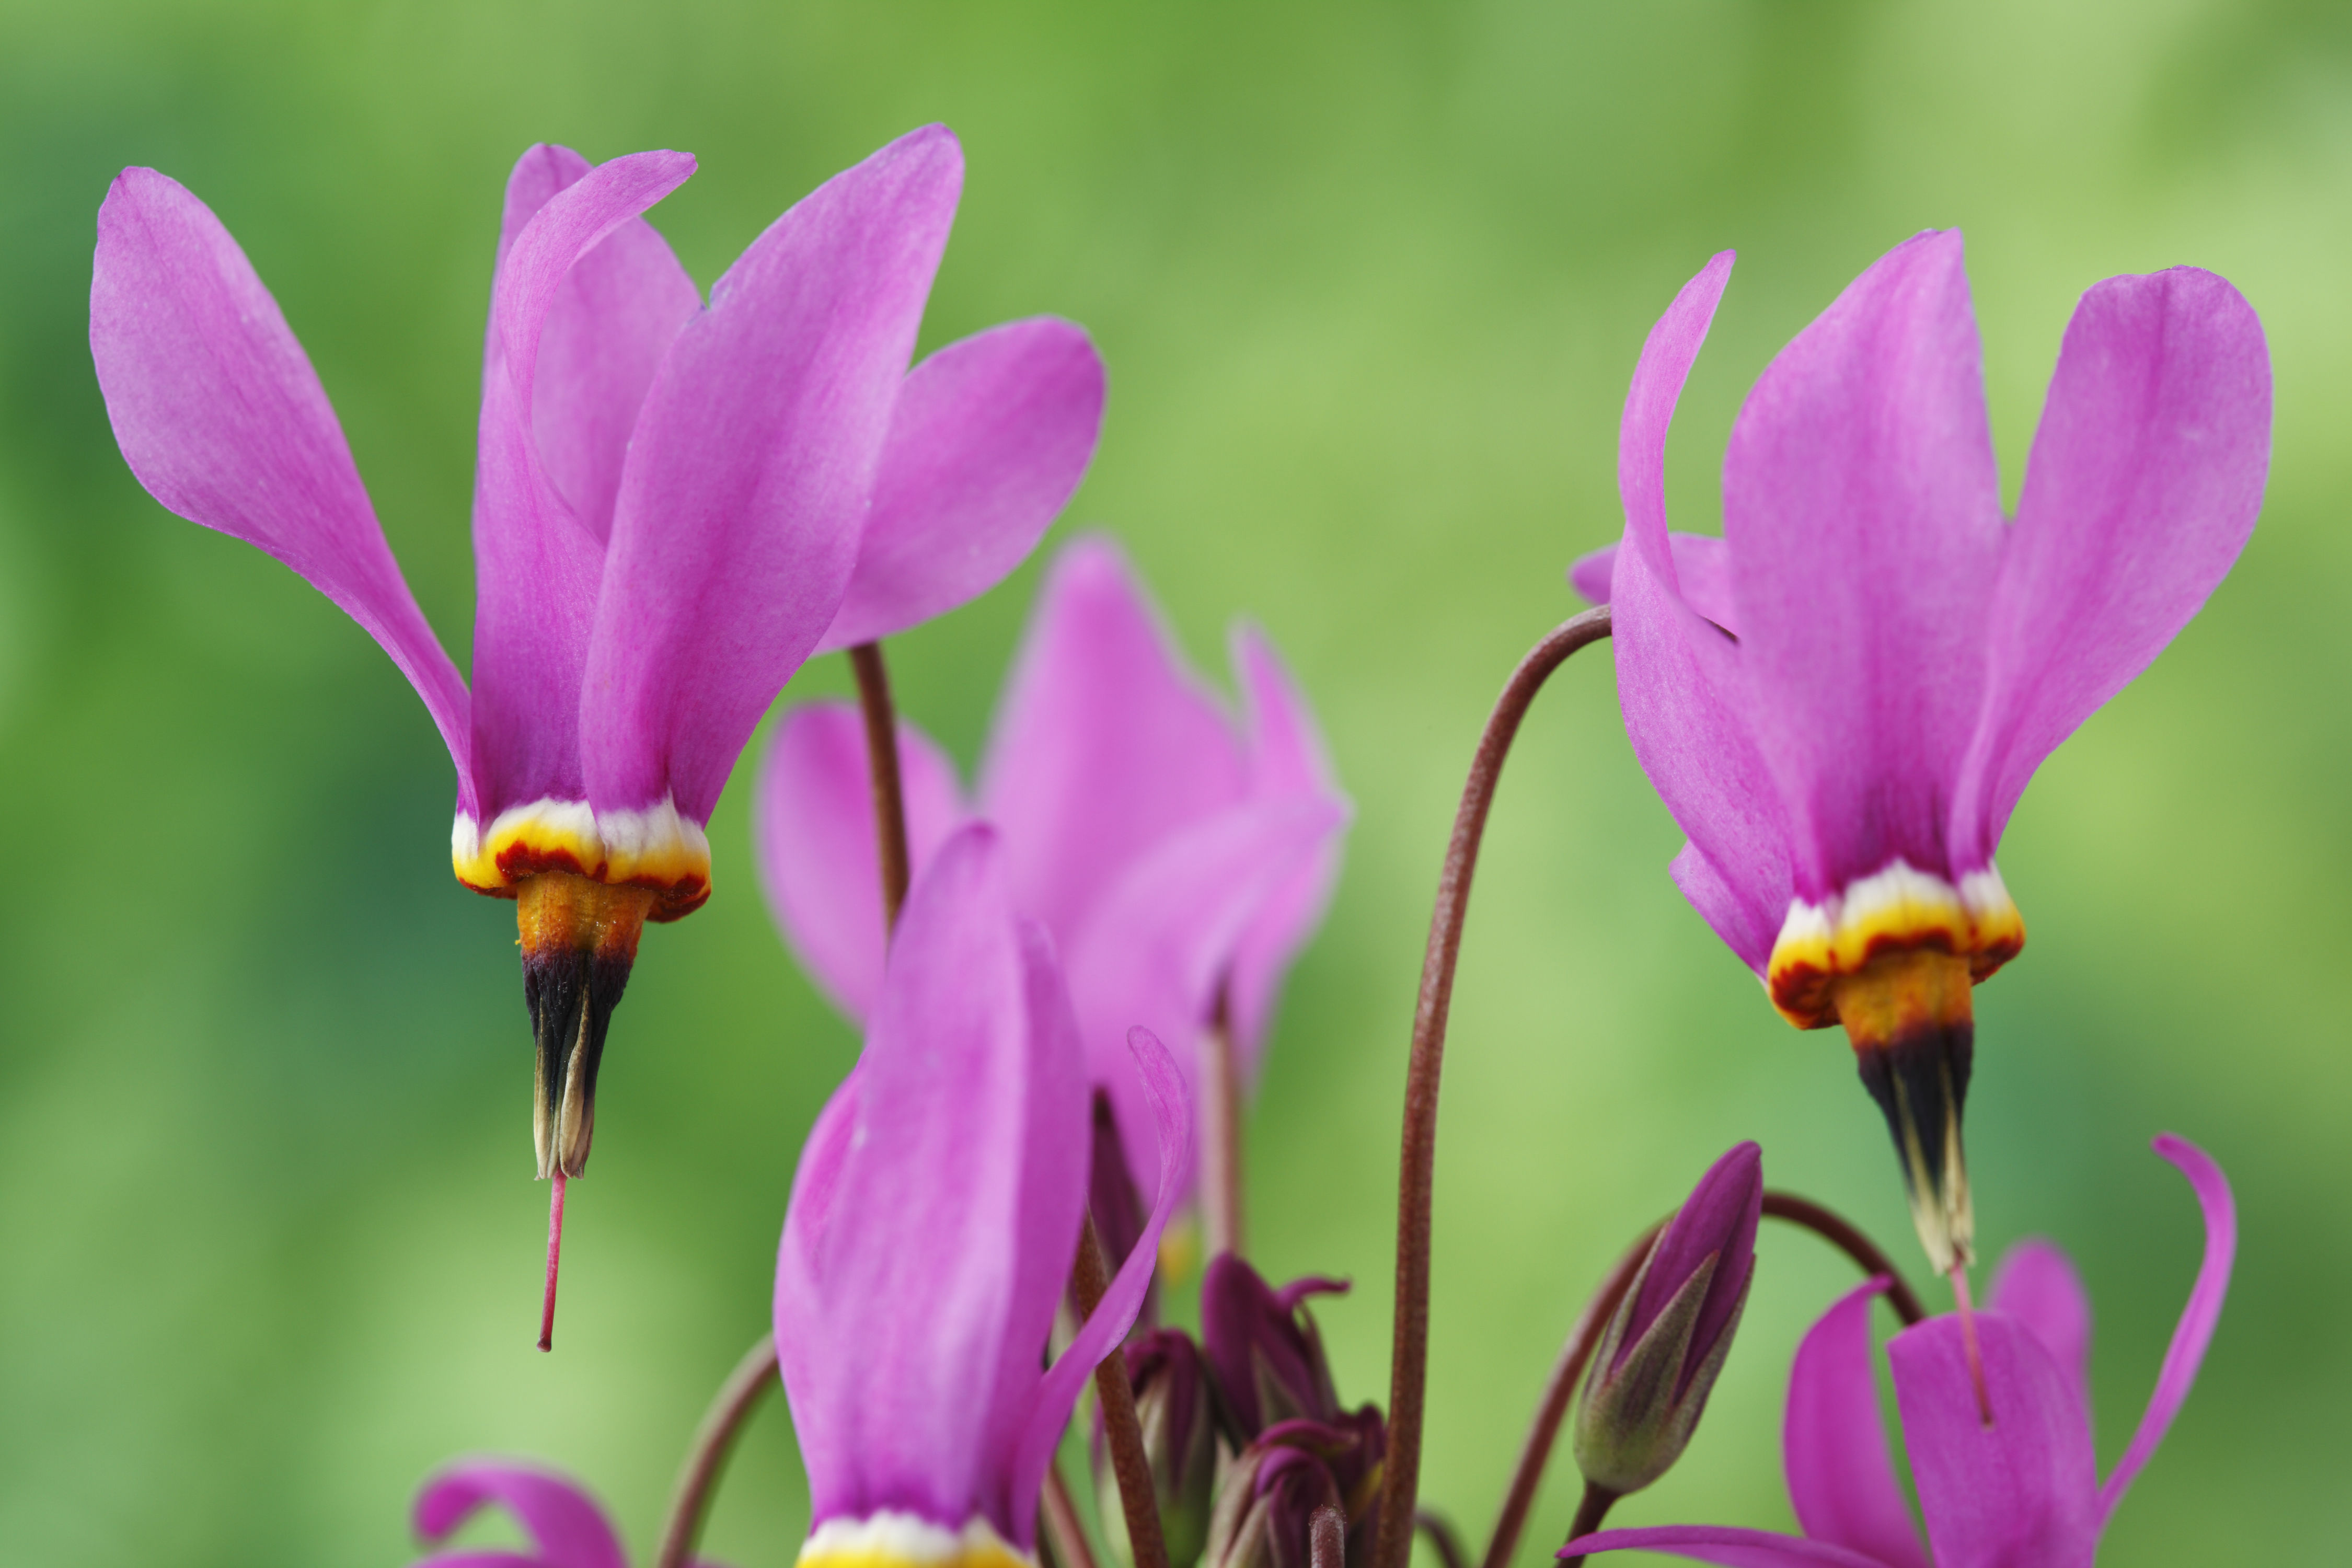 Everyone Can Glimpse a Shooting Star in the Garden Thanks to This Plant